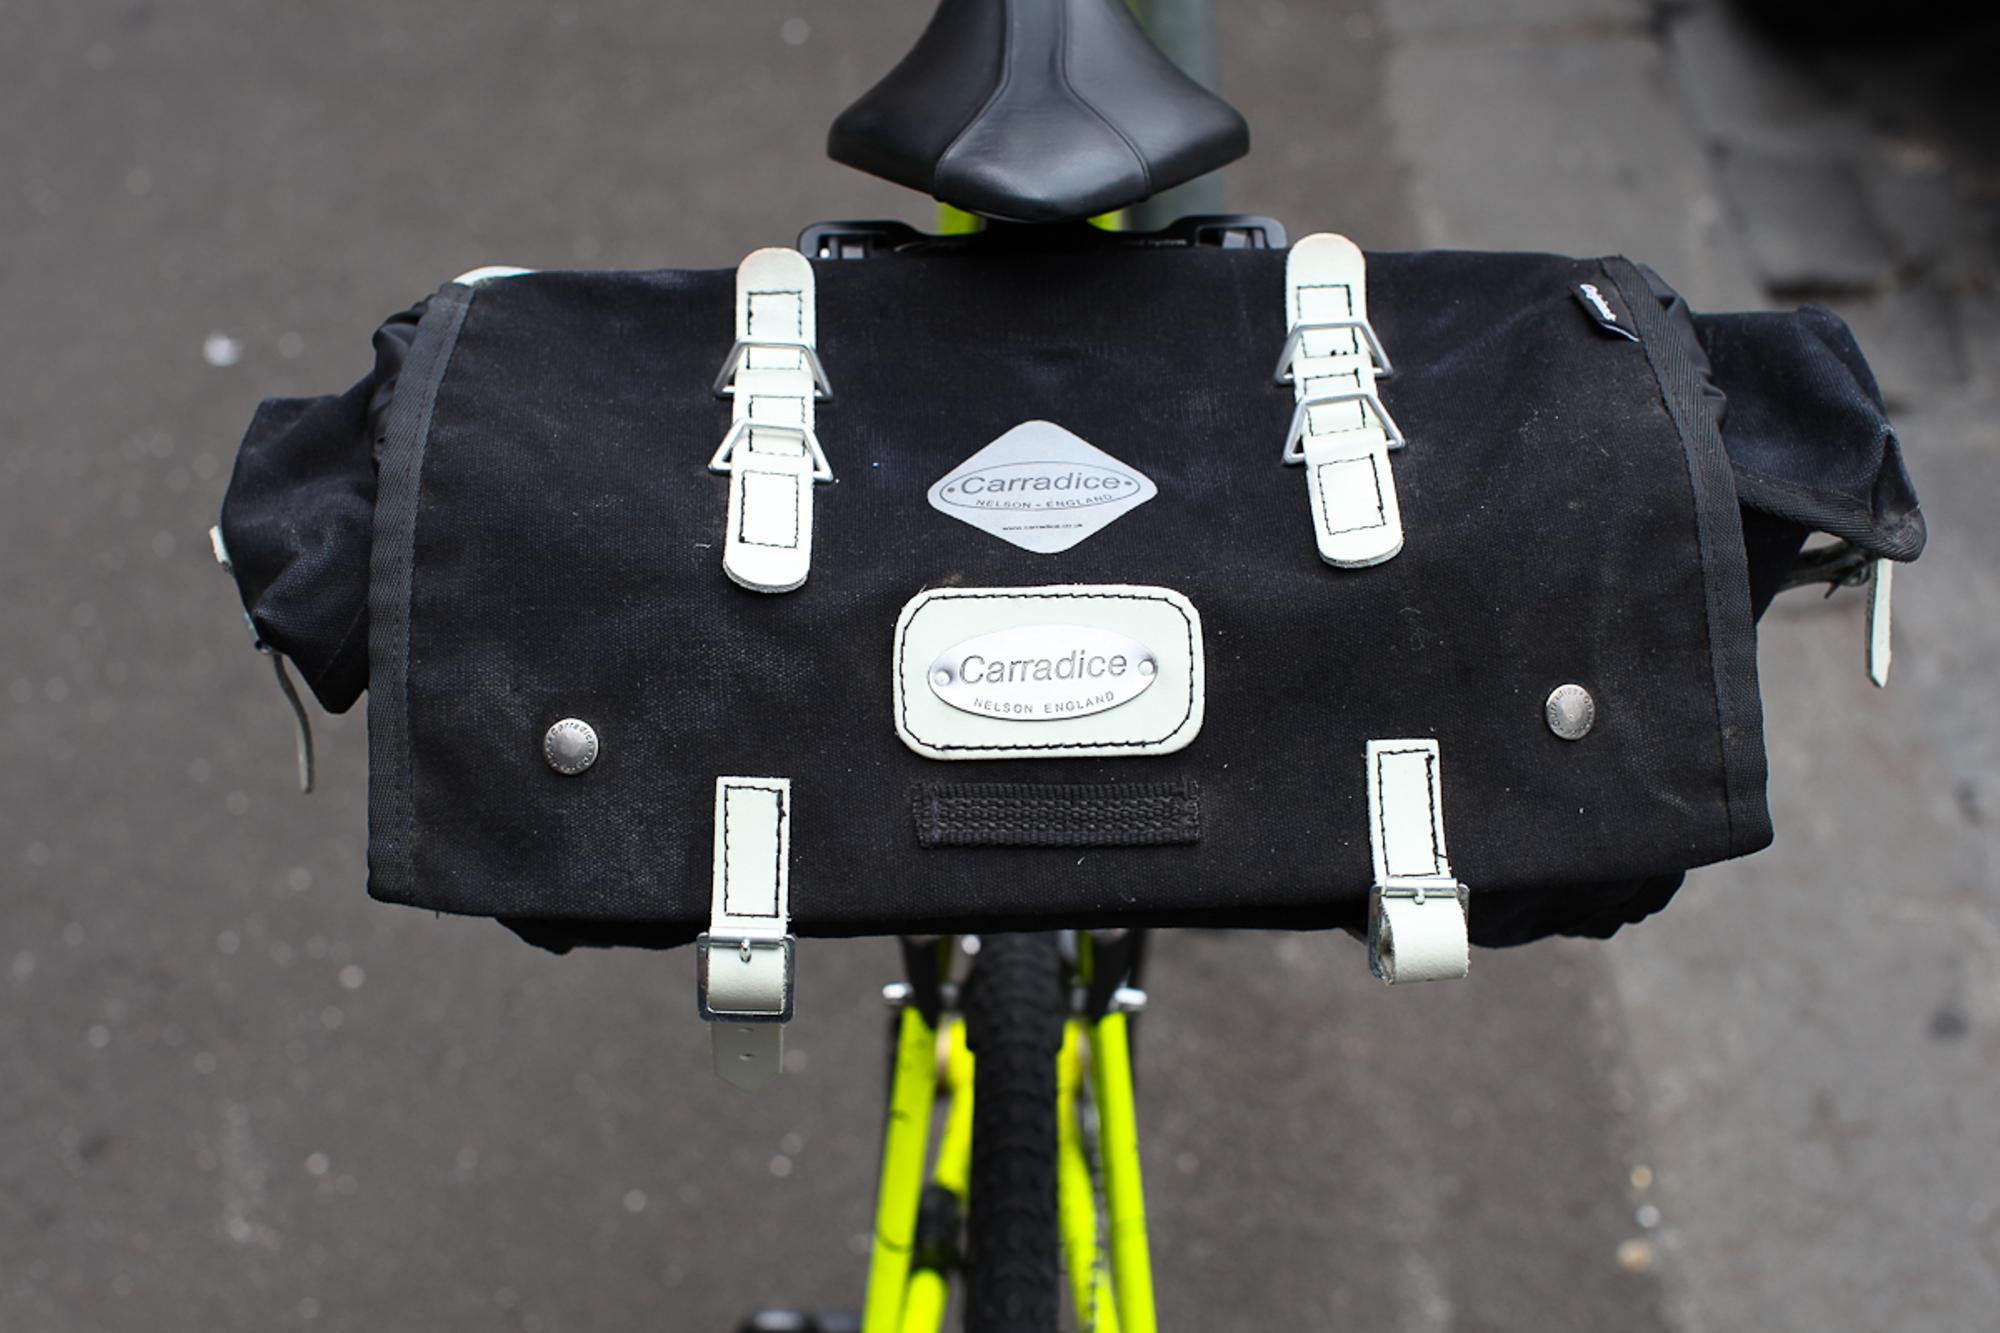 The Barley Saddle Bag is waterproof and in black, matches just about any bike. Even a neon yellow splatter punk's ride.